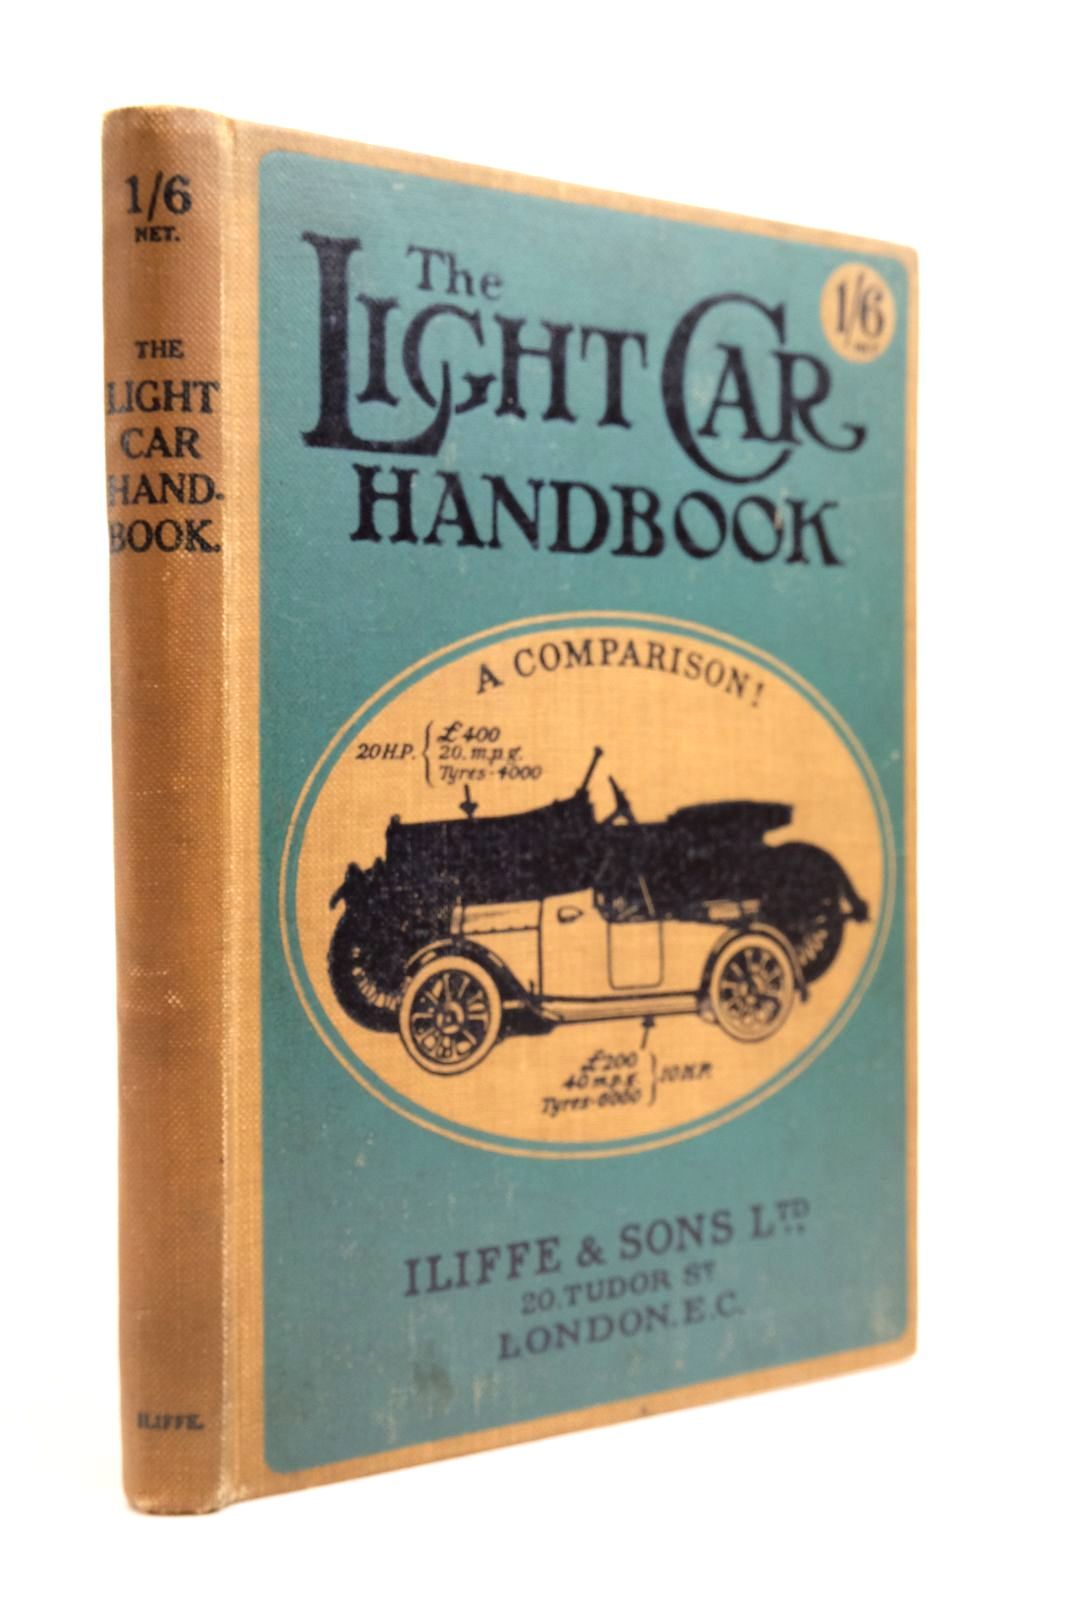 Photo of THE LIGHT CAR HANDBOOK written by Candidus, published by Iliffe & Sons Limited (STOCK CODE: 2134610)  for sale by Stella & Rose's Books